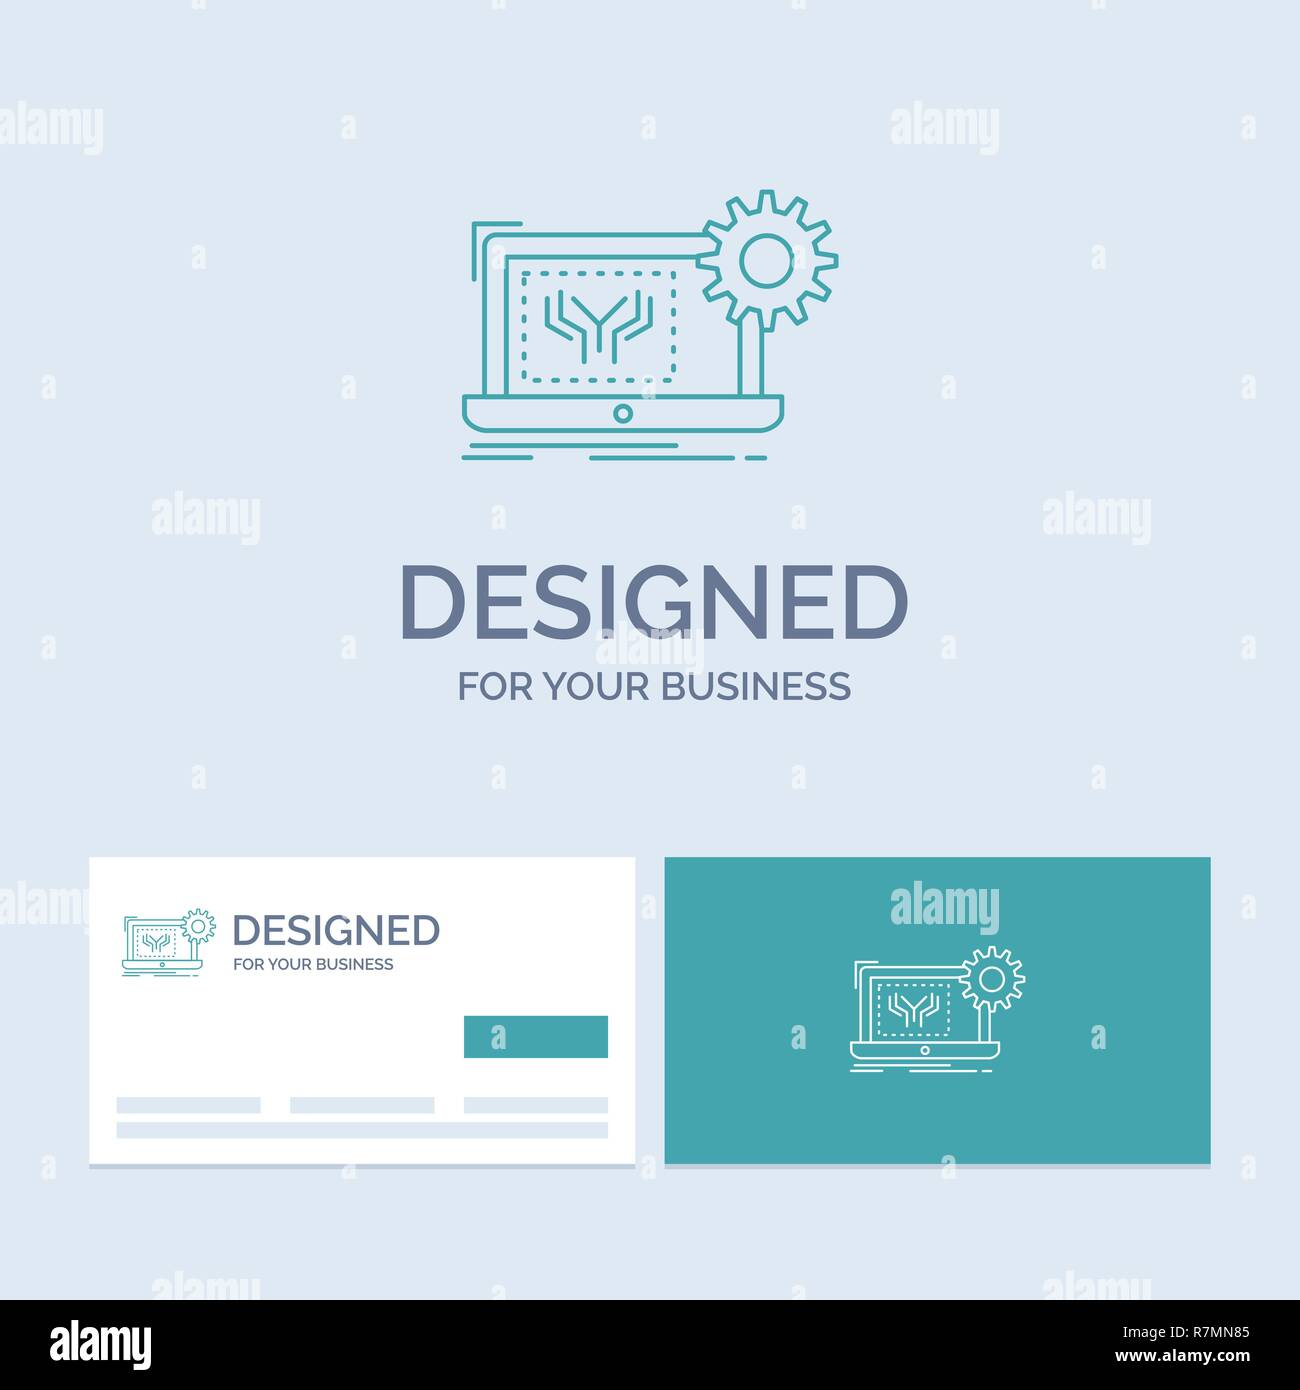 Blueprint, circuit, electronics, engineering, hardware Business Logo Line Icon Symbol for your business. Turquoise Business Cards with Brand logo temp - Stock Image